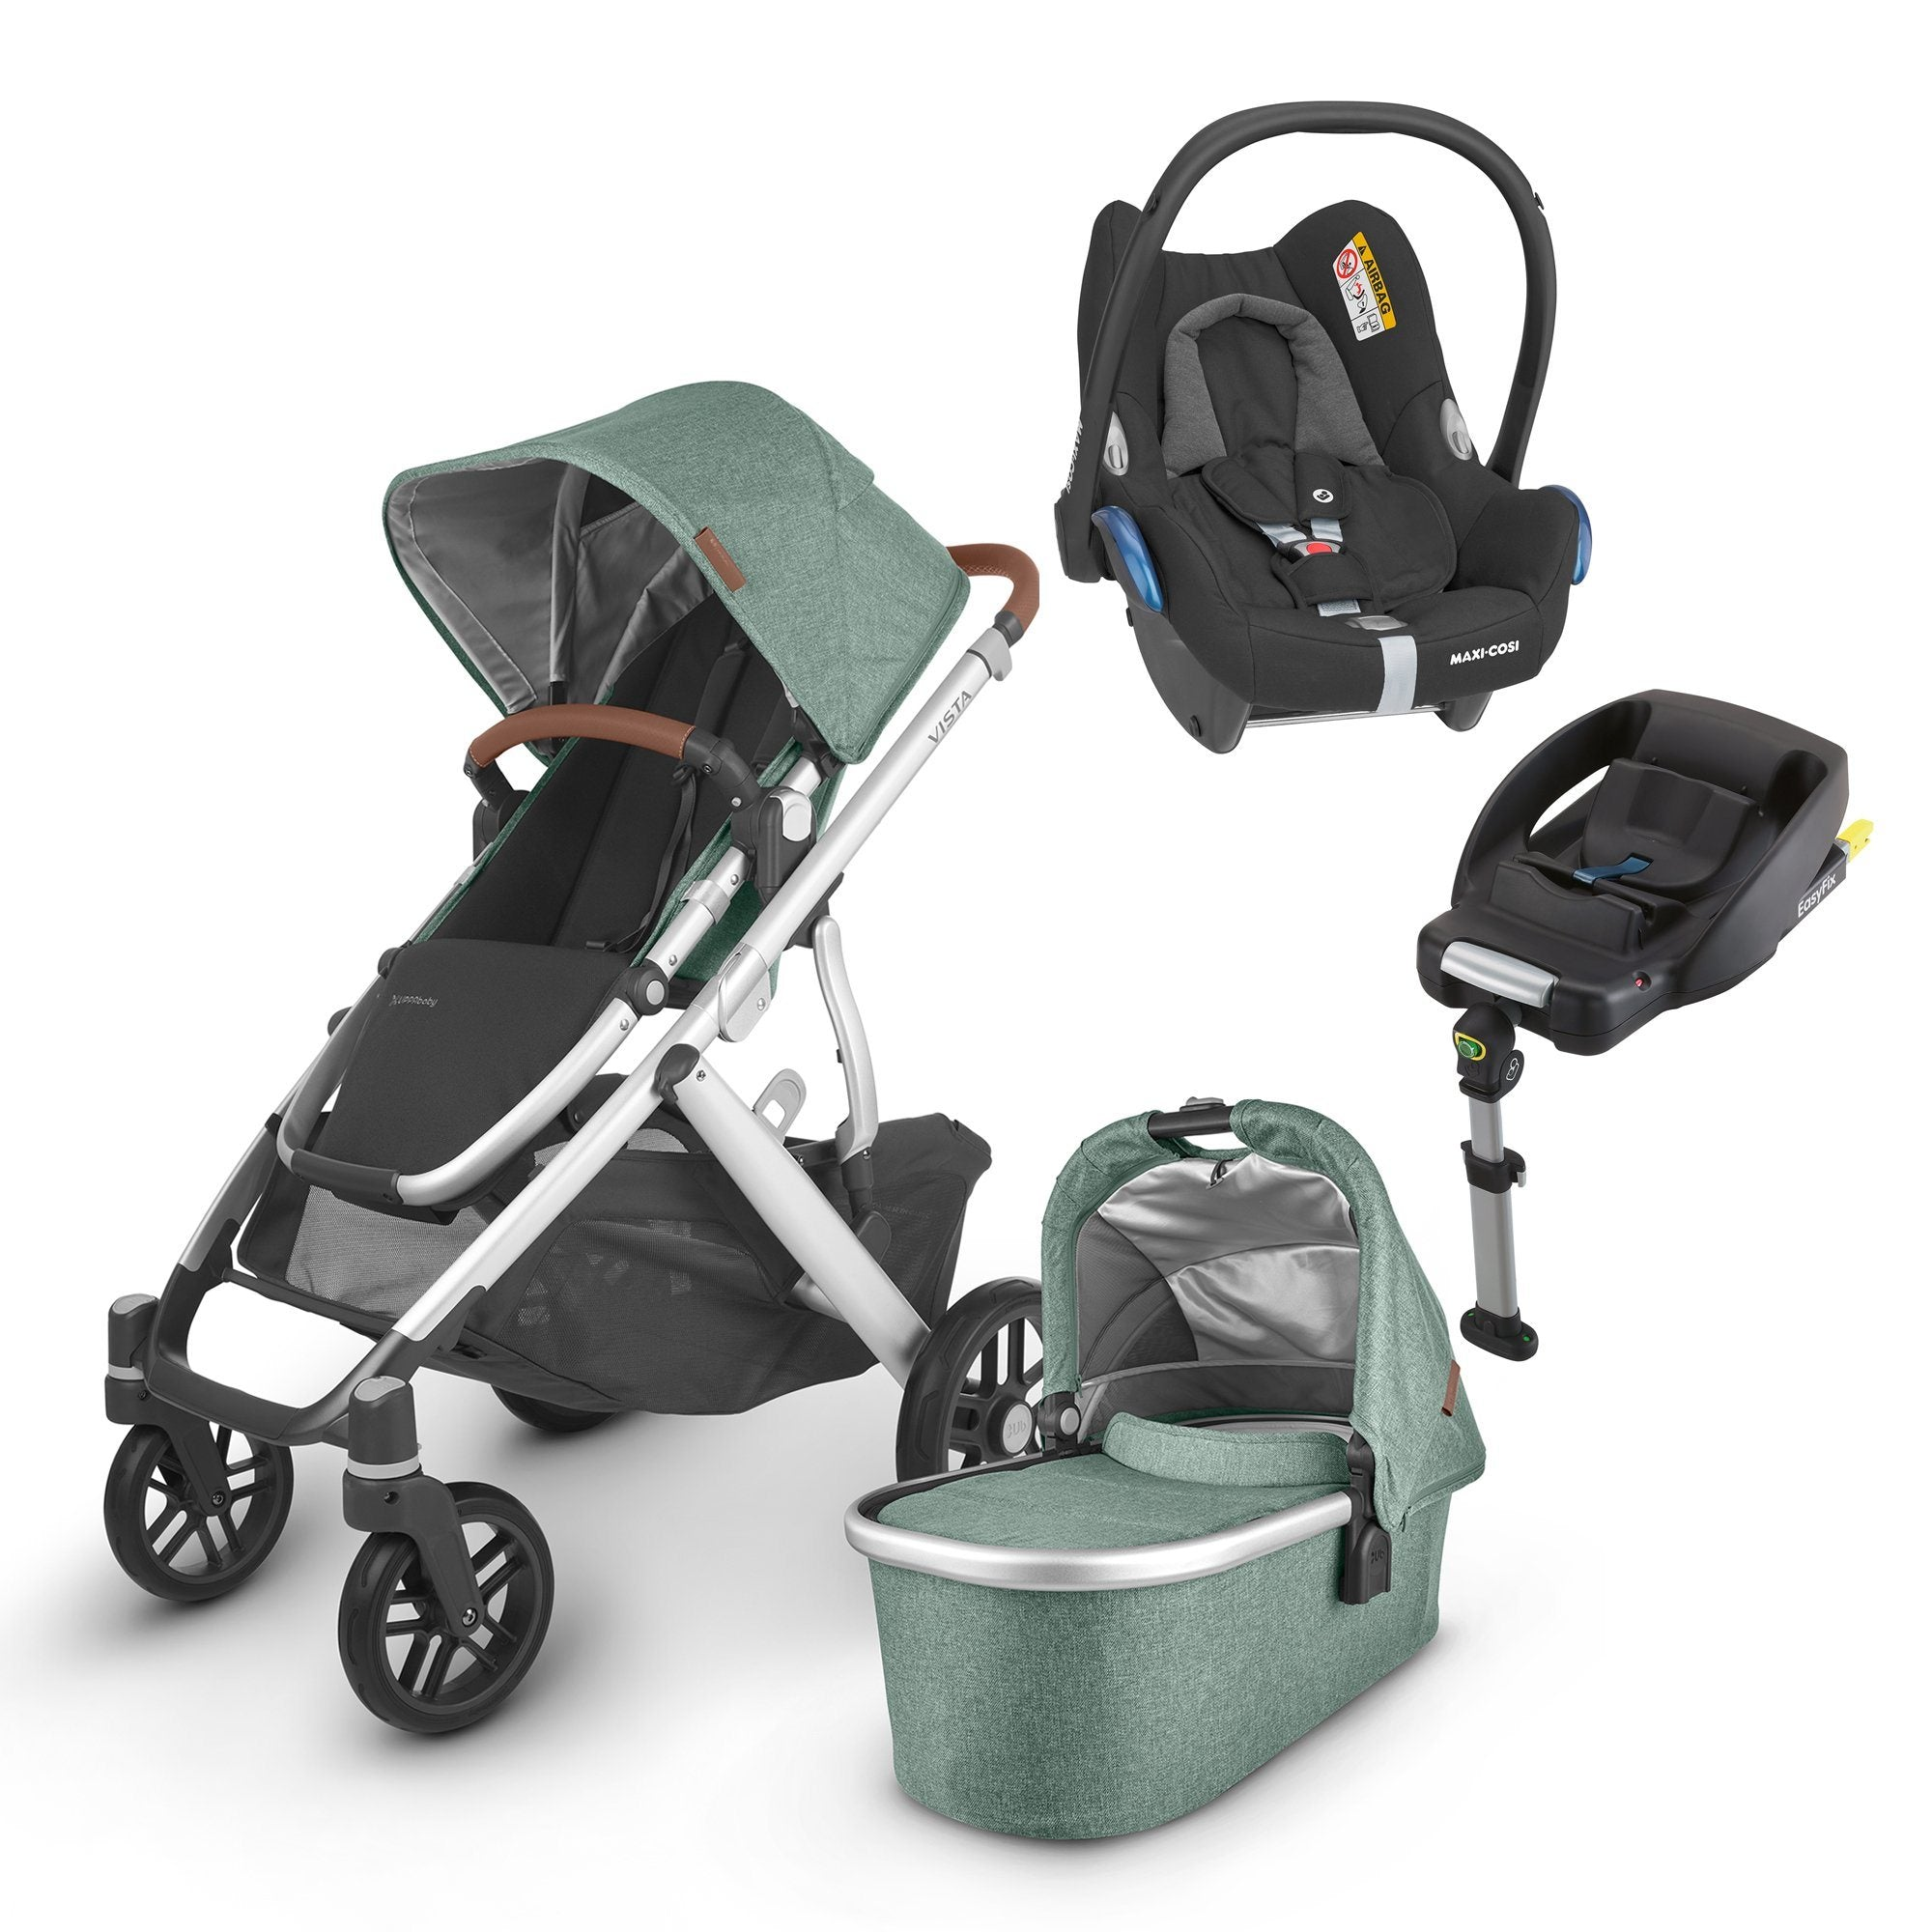 UPPAbaby VISTA V2 Travel System (2020) - Emmett with Maxi-Cosi Cabriofix and base